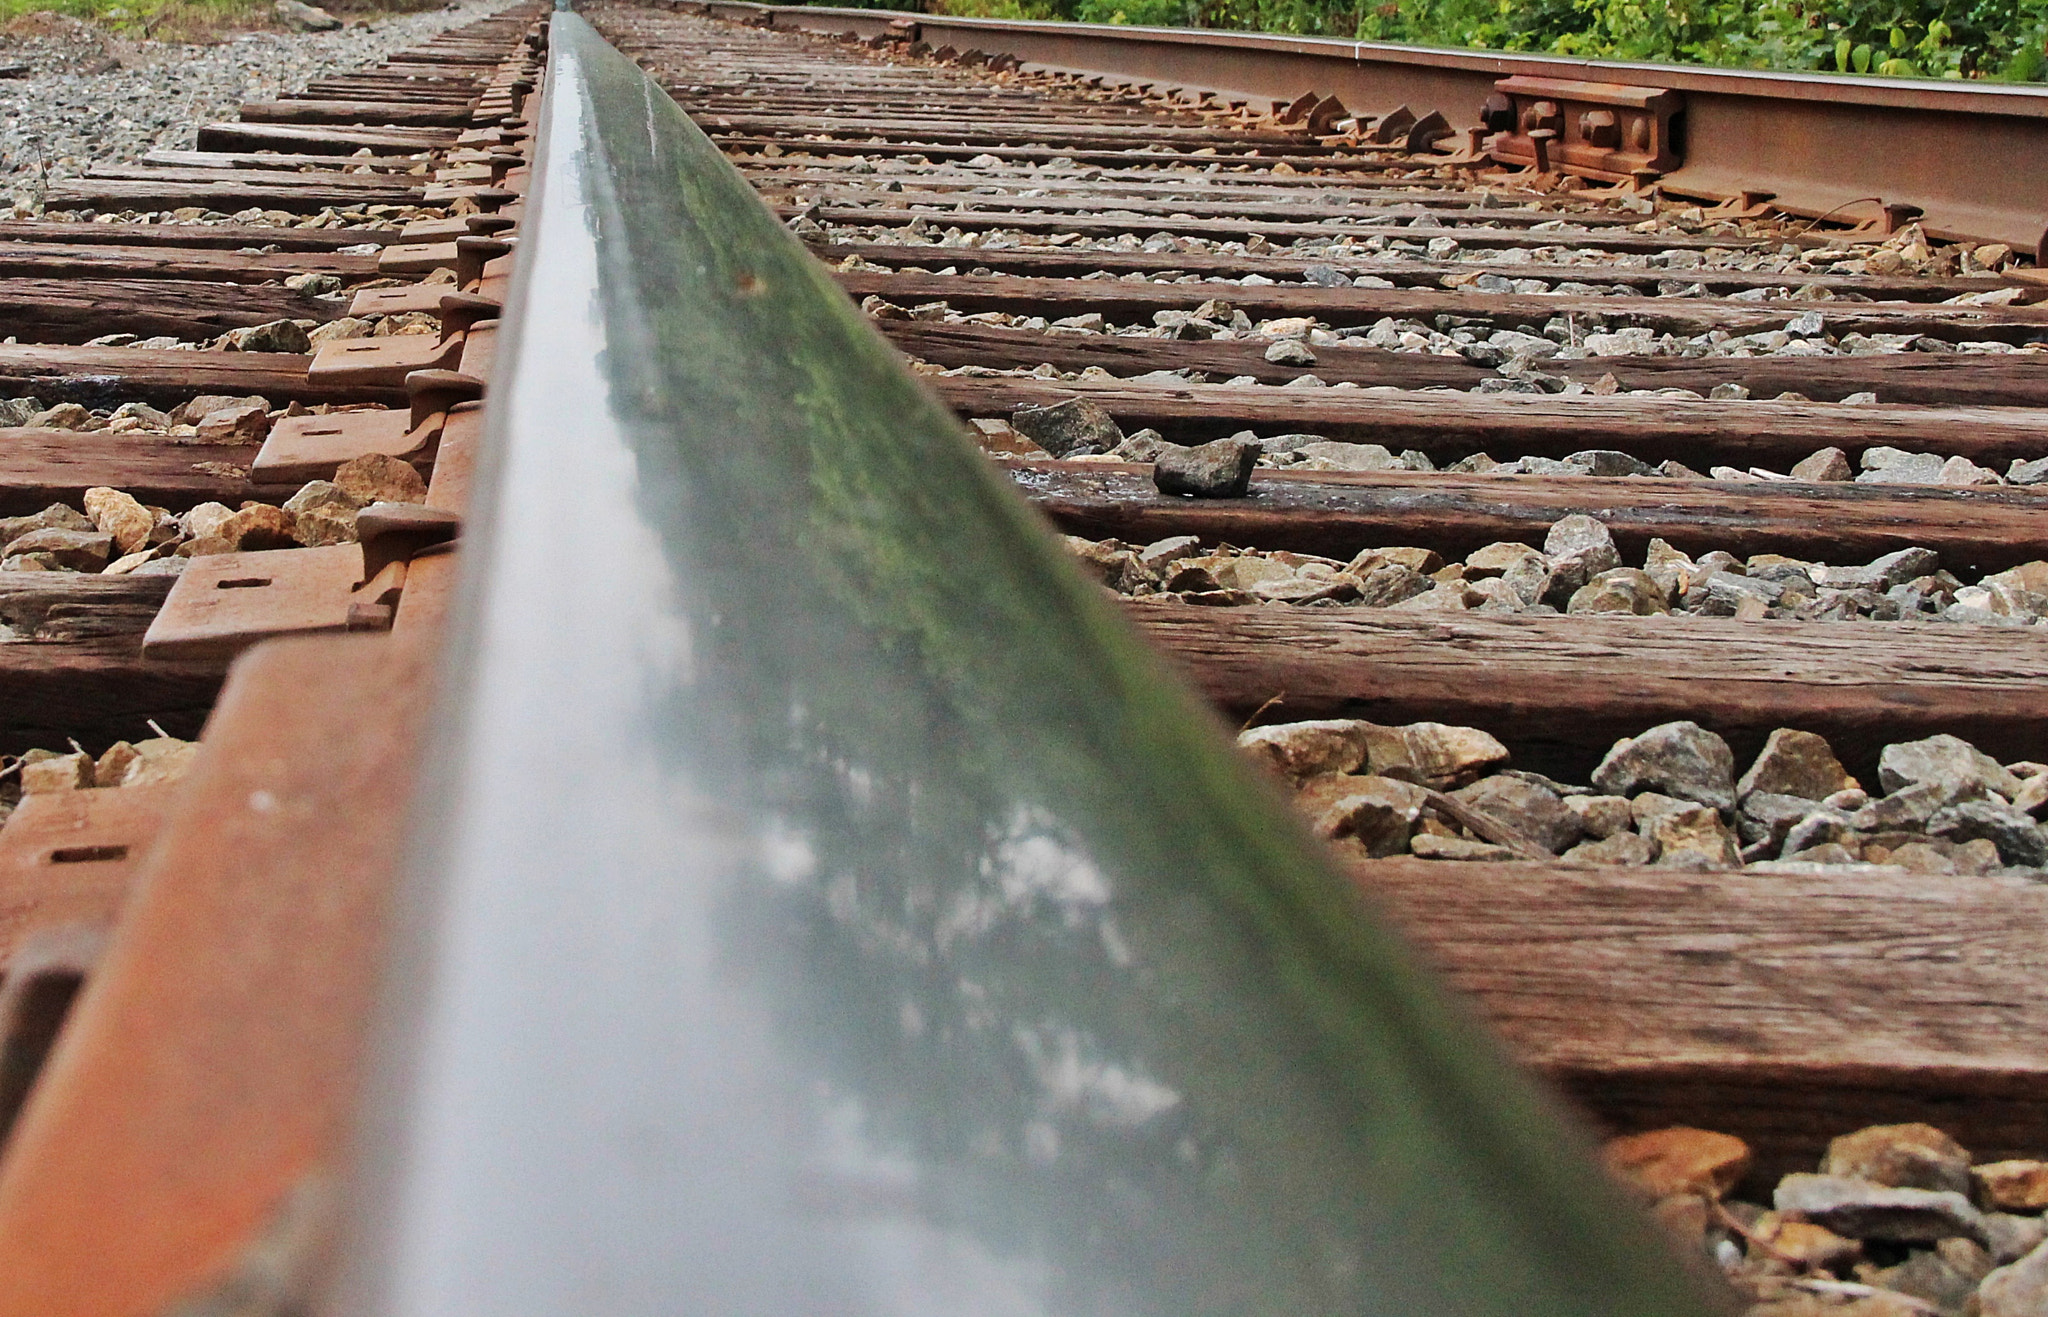 Photograph Reflections of Rails by Kip Gienau on 500px